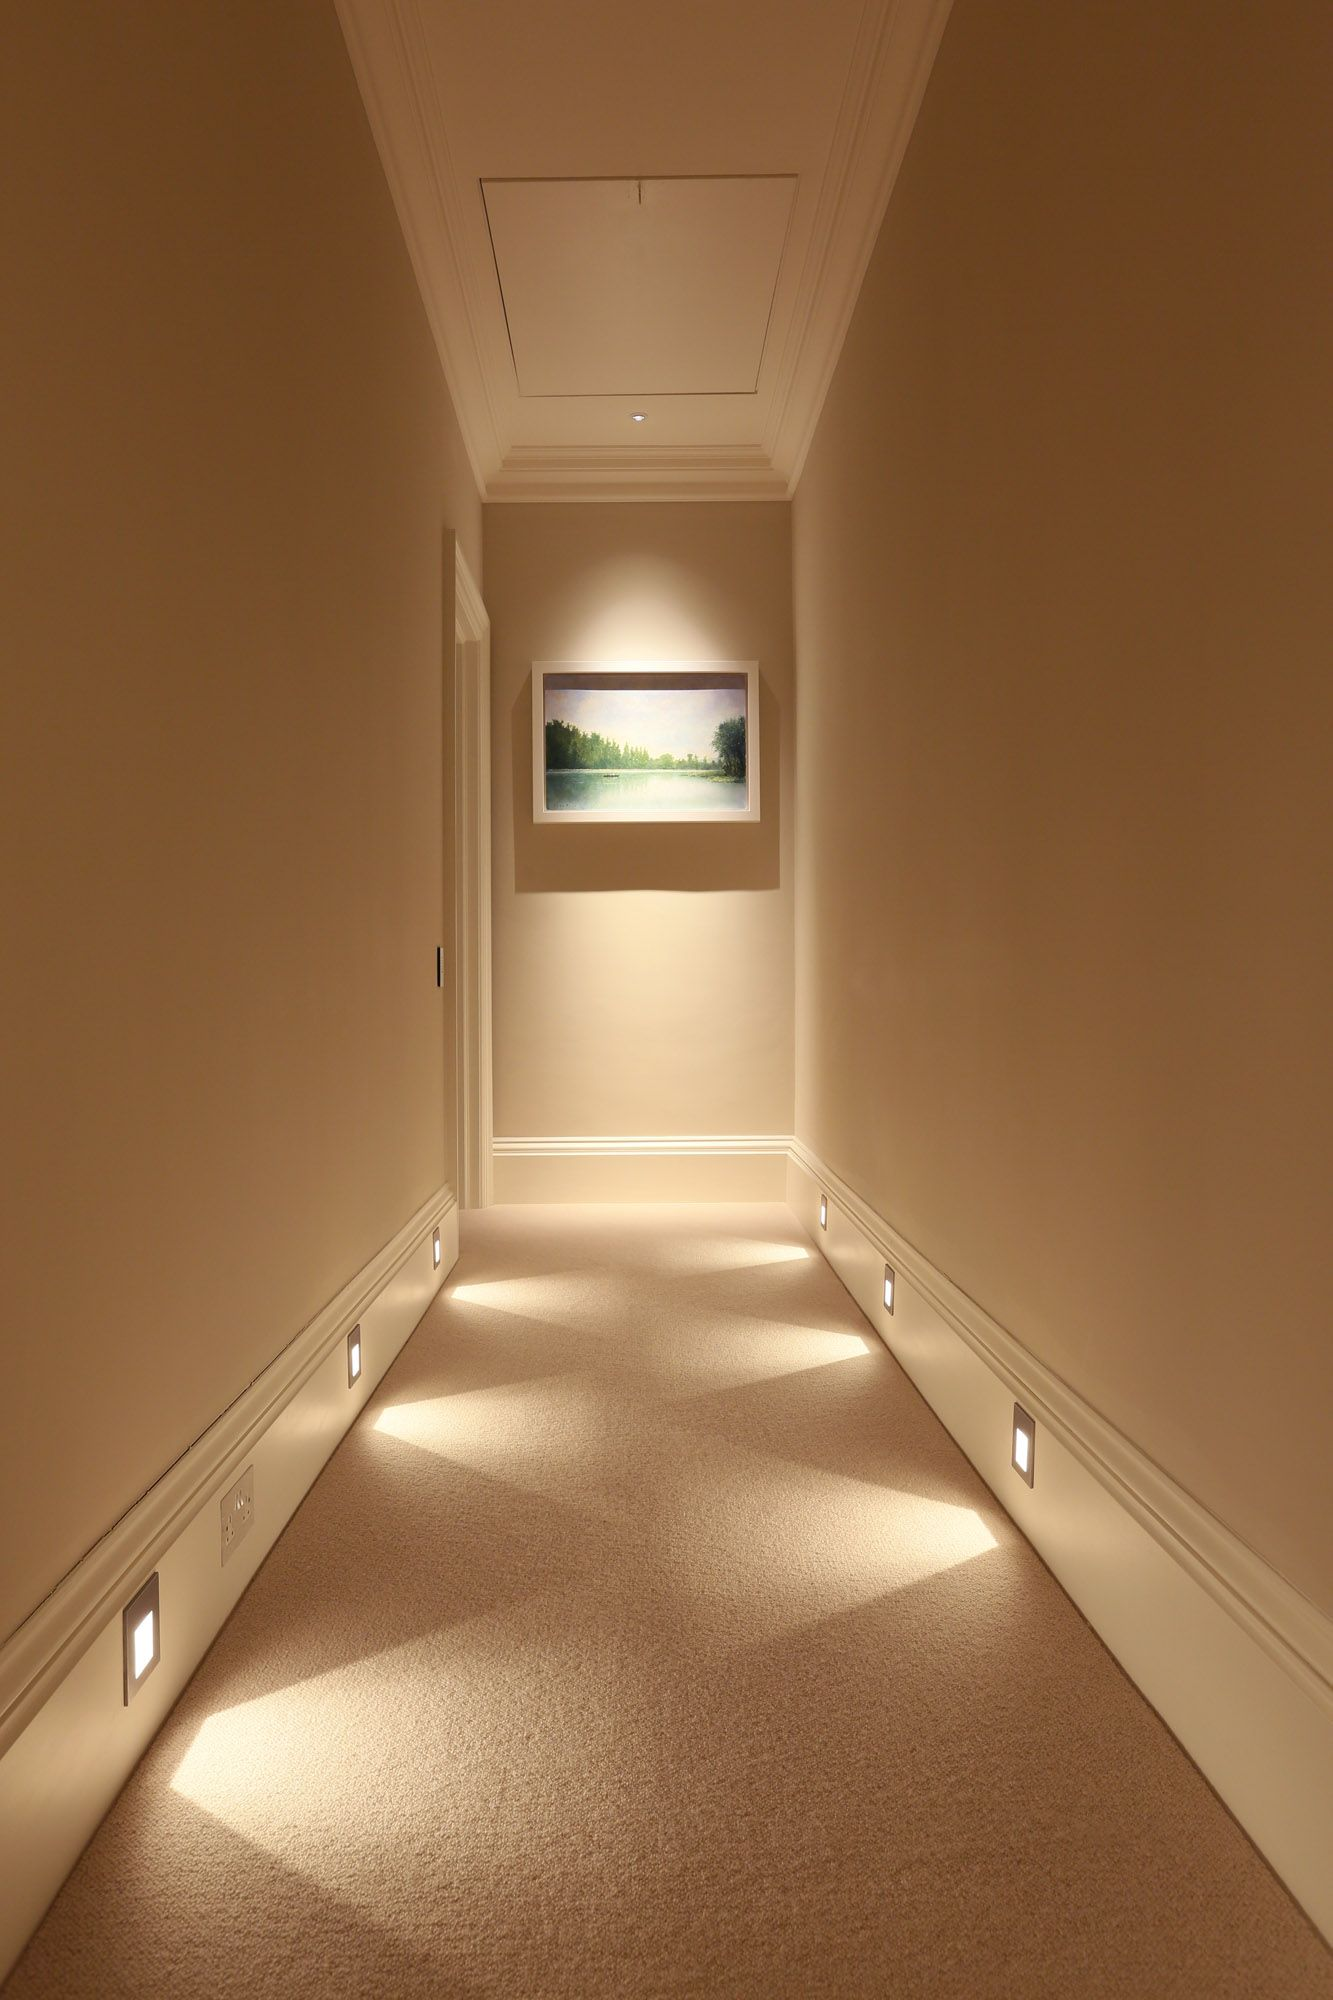 most popular light for stairways check it out homeideas stairways cool hallway lighting r66 hallway